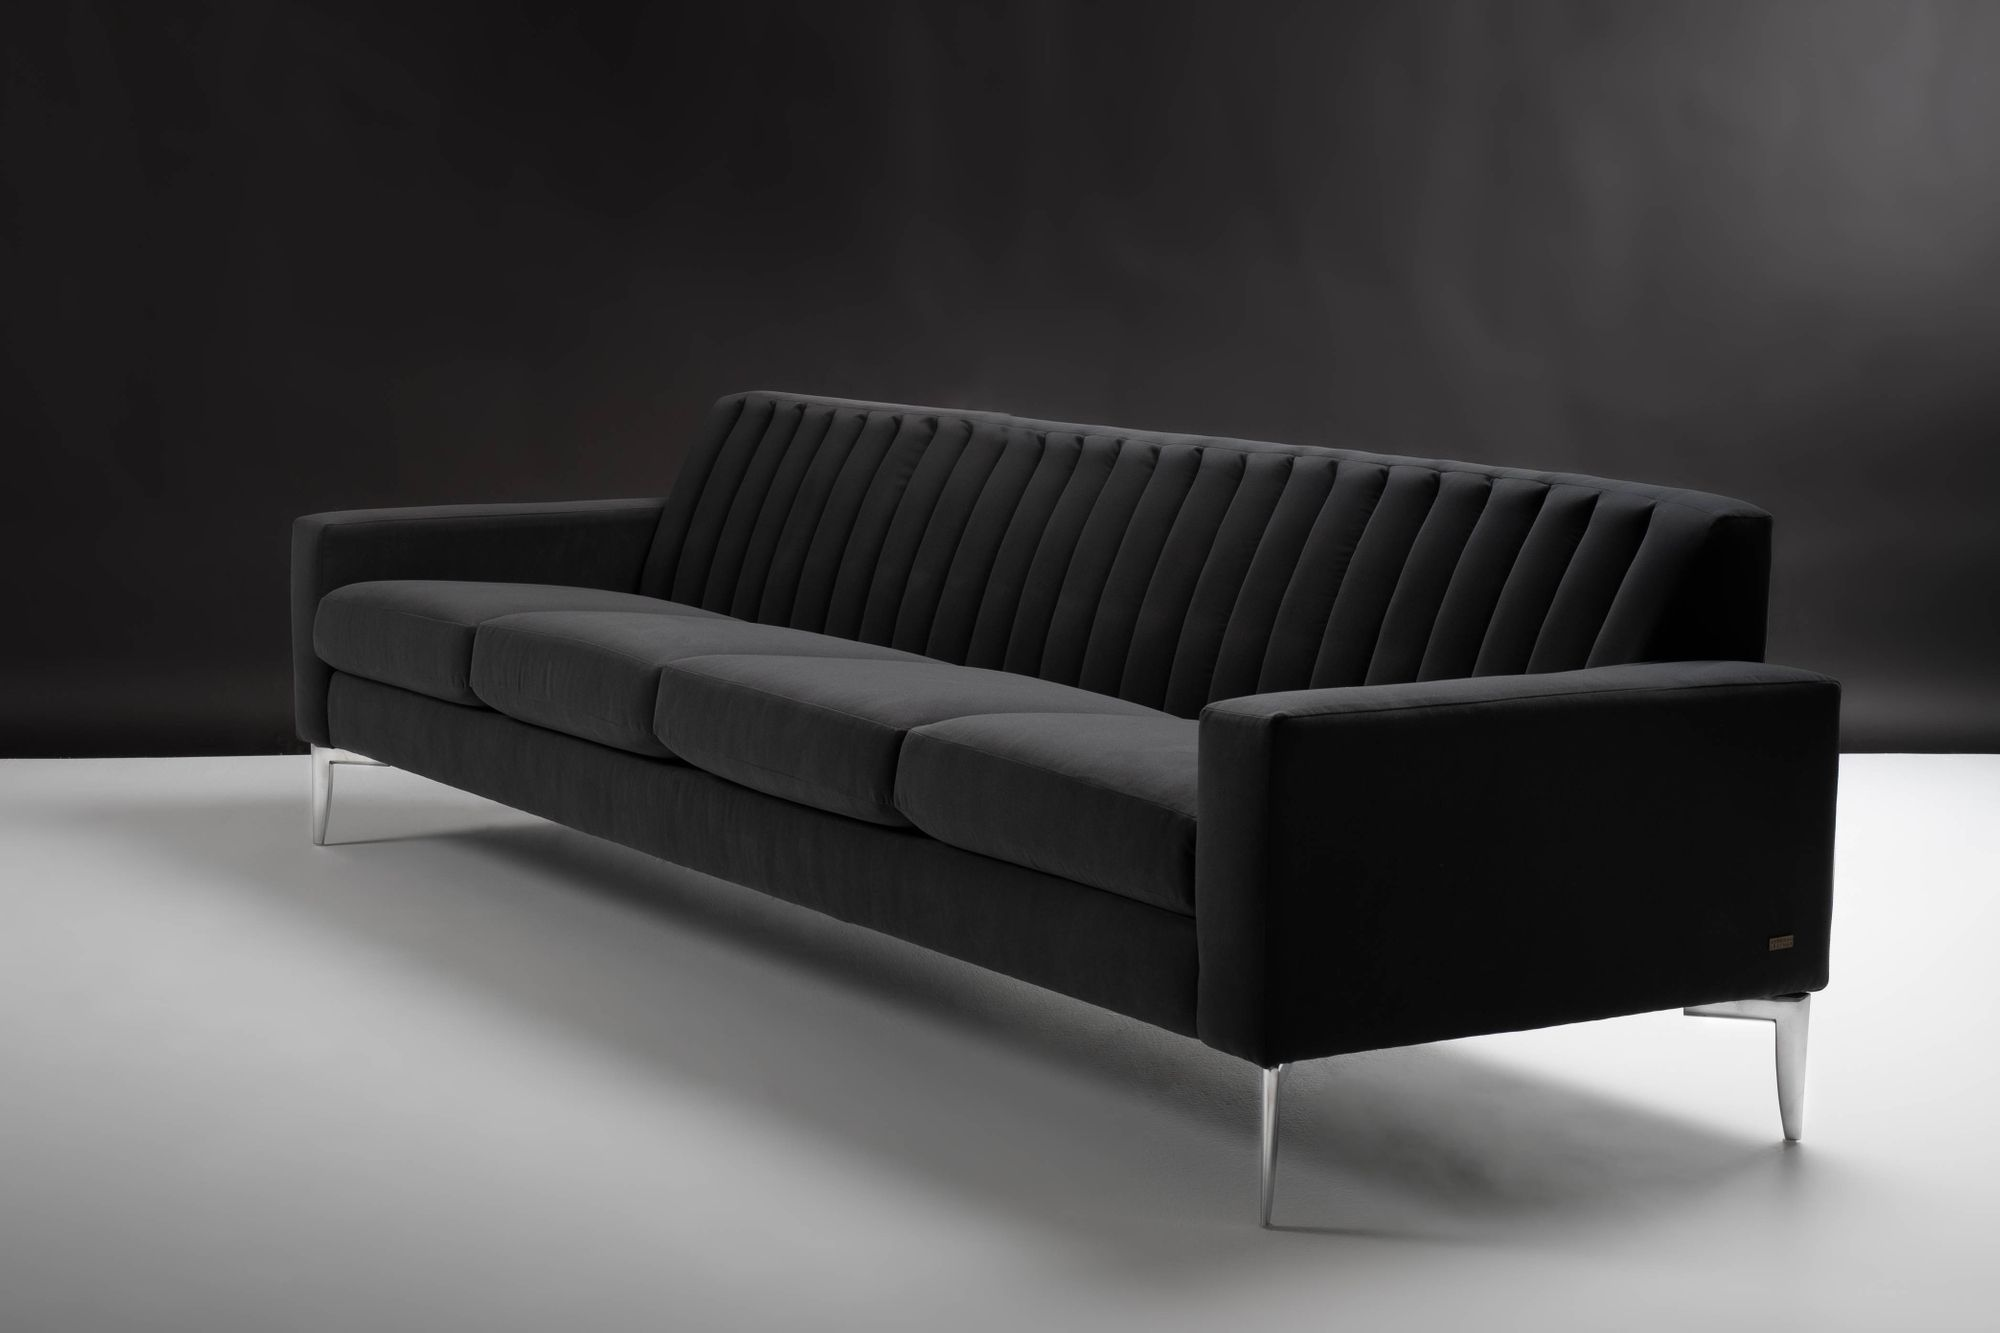 With a vintage modern flair, Rayna refines any space and adds a chic touch. 🖤 •••••••••••••••••••••••••••••••••••••••• Style - Rayna   Cover - Reed Black #americanleather #furniture#designinspiration #blacksofa #blackandsilver #moderndesign #designideas #madeinamerica #interiors #modernfurniture #design#interiors #interiordesign #mystylednest #furnituredesign #livingroomdecor